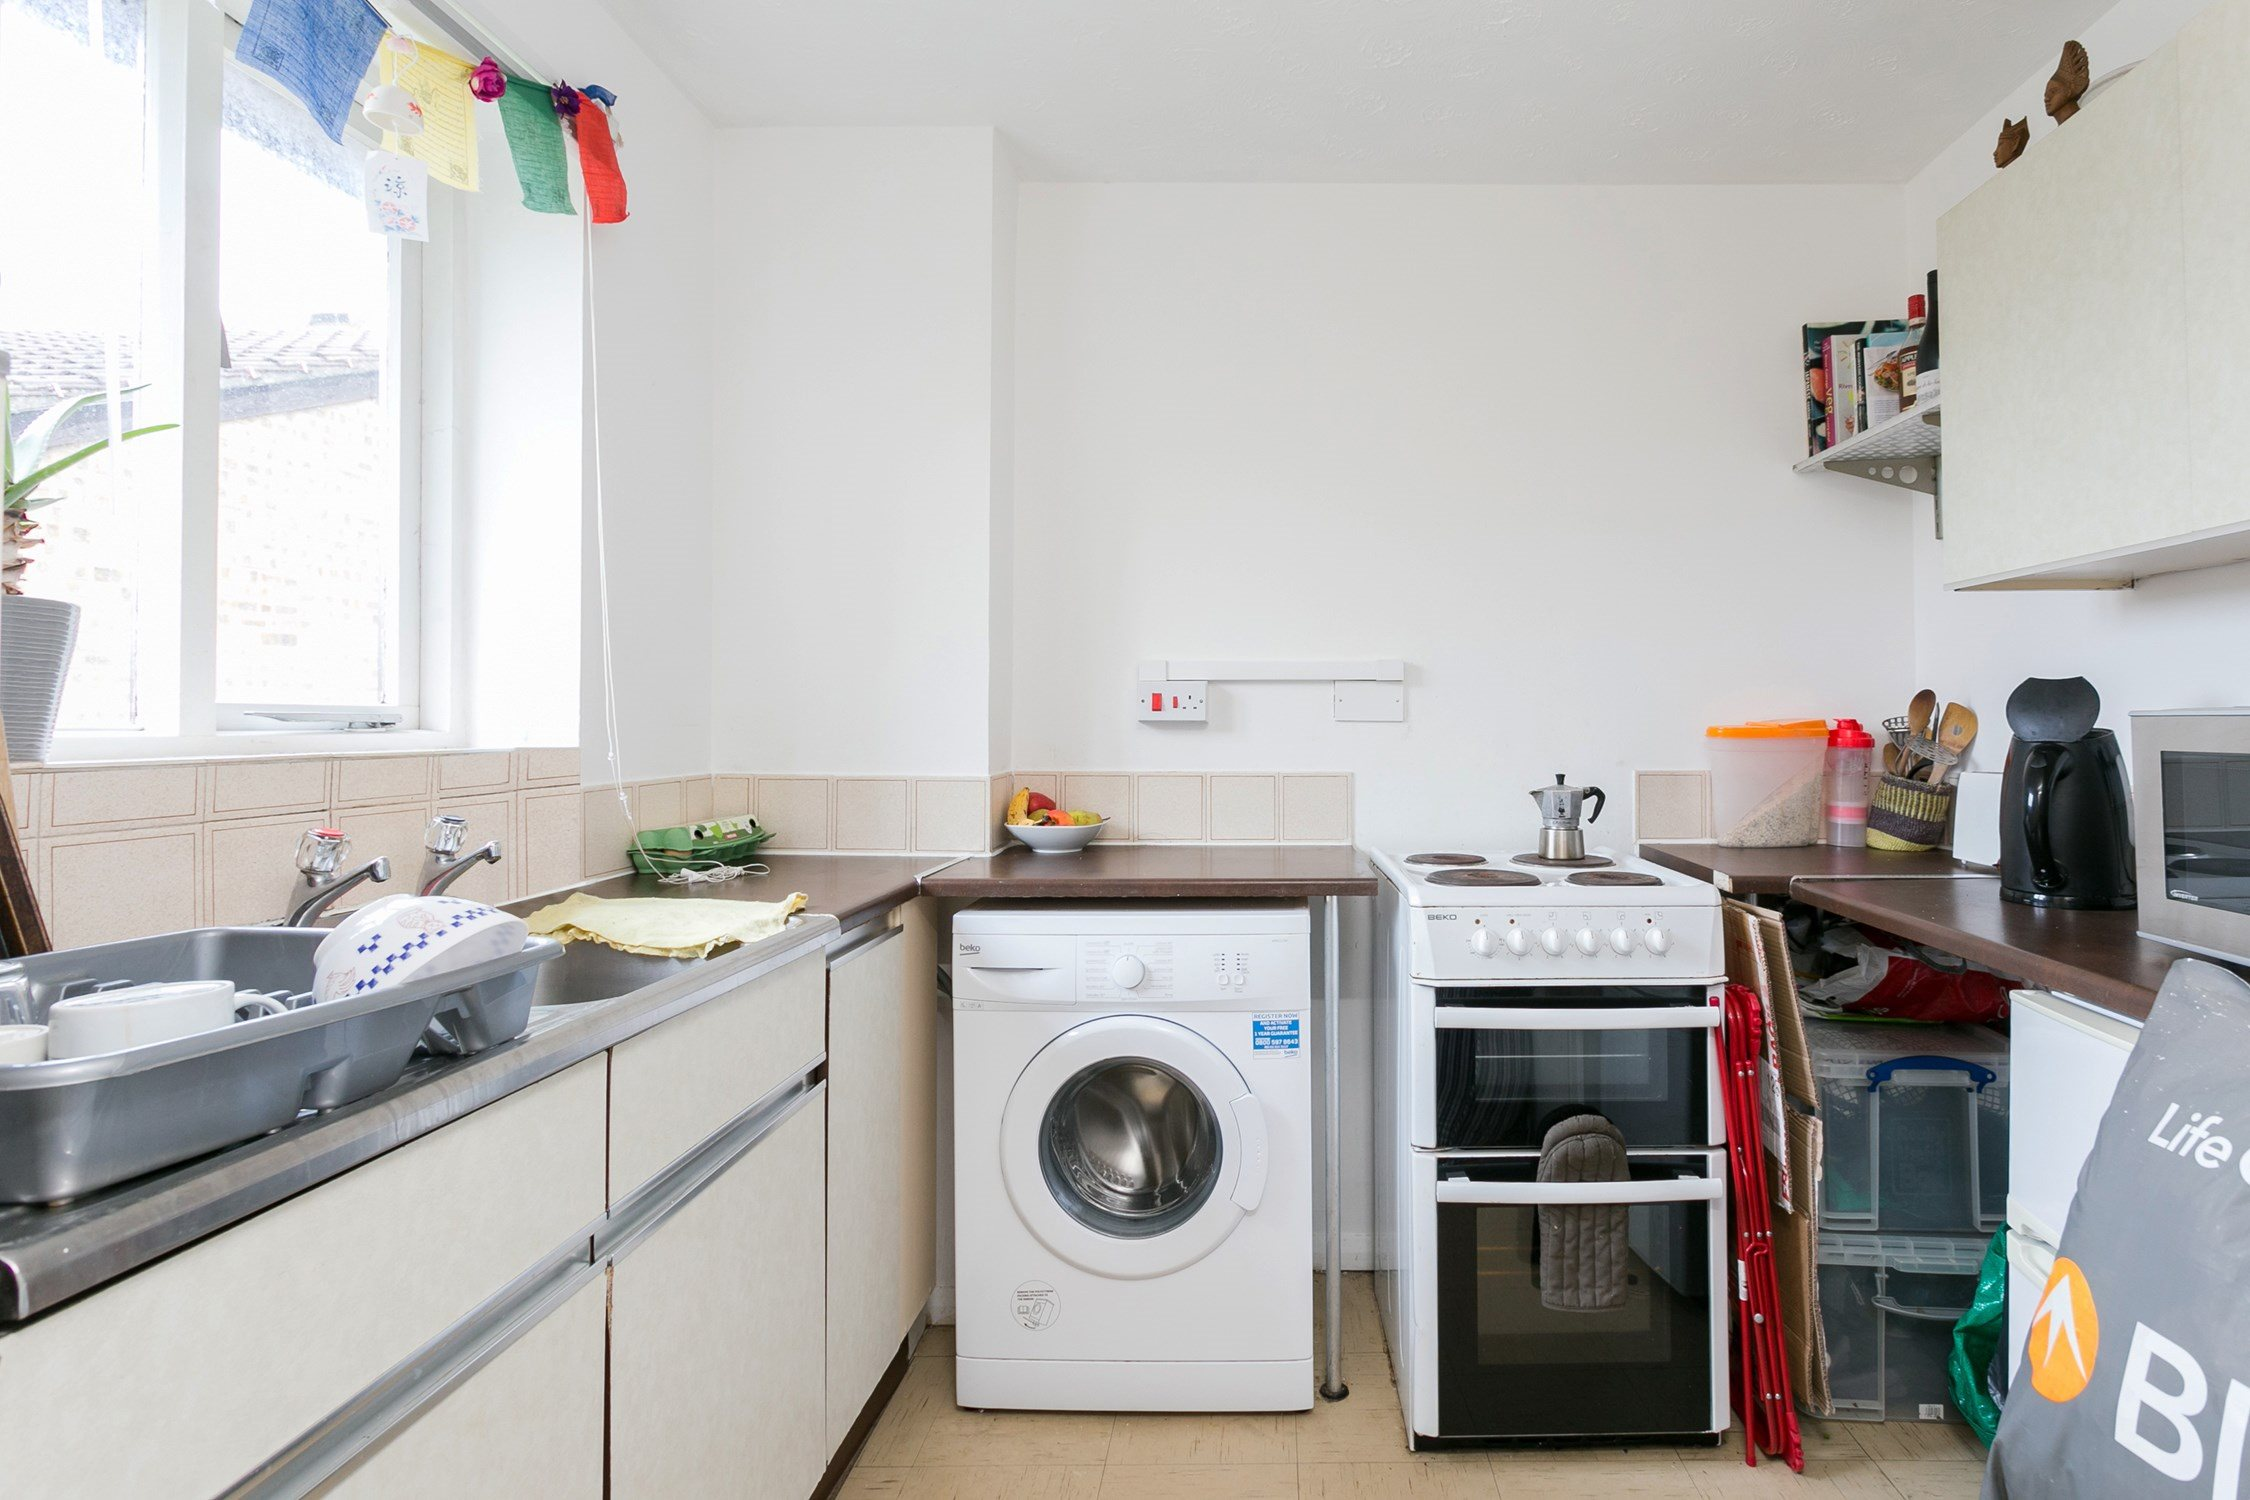 Portico Studio Flat Recently Let In Leyton South